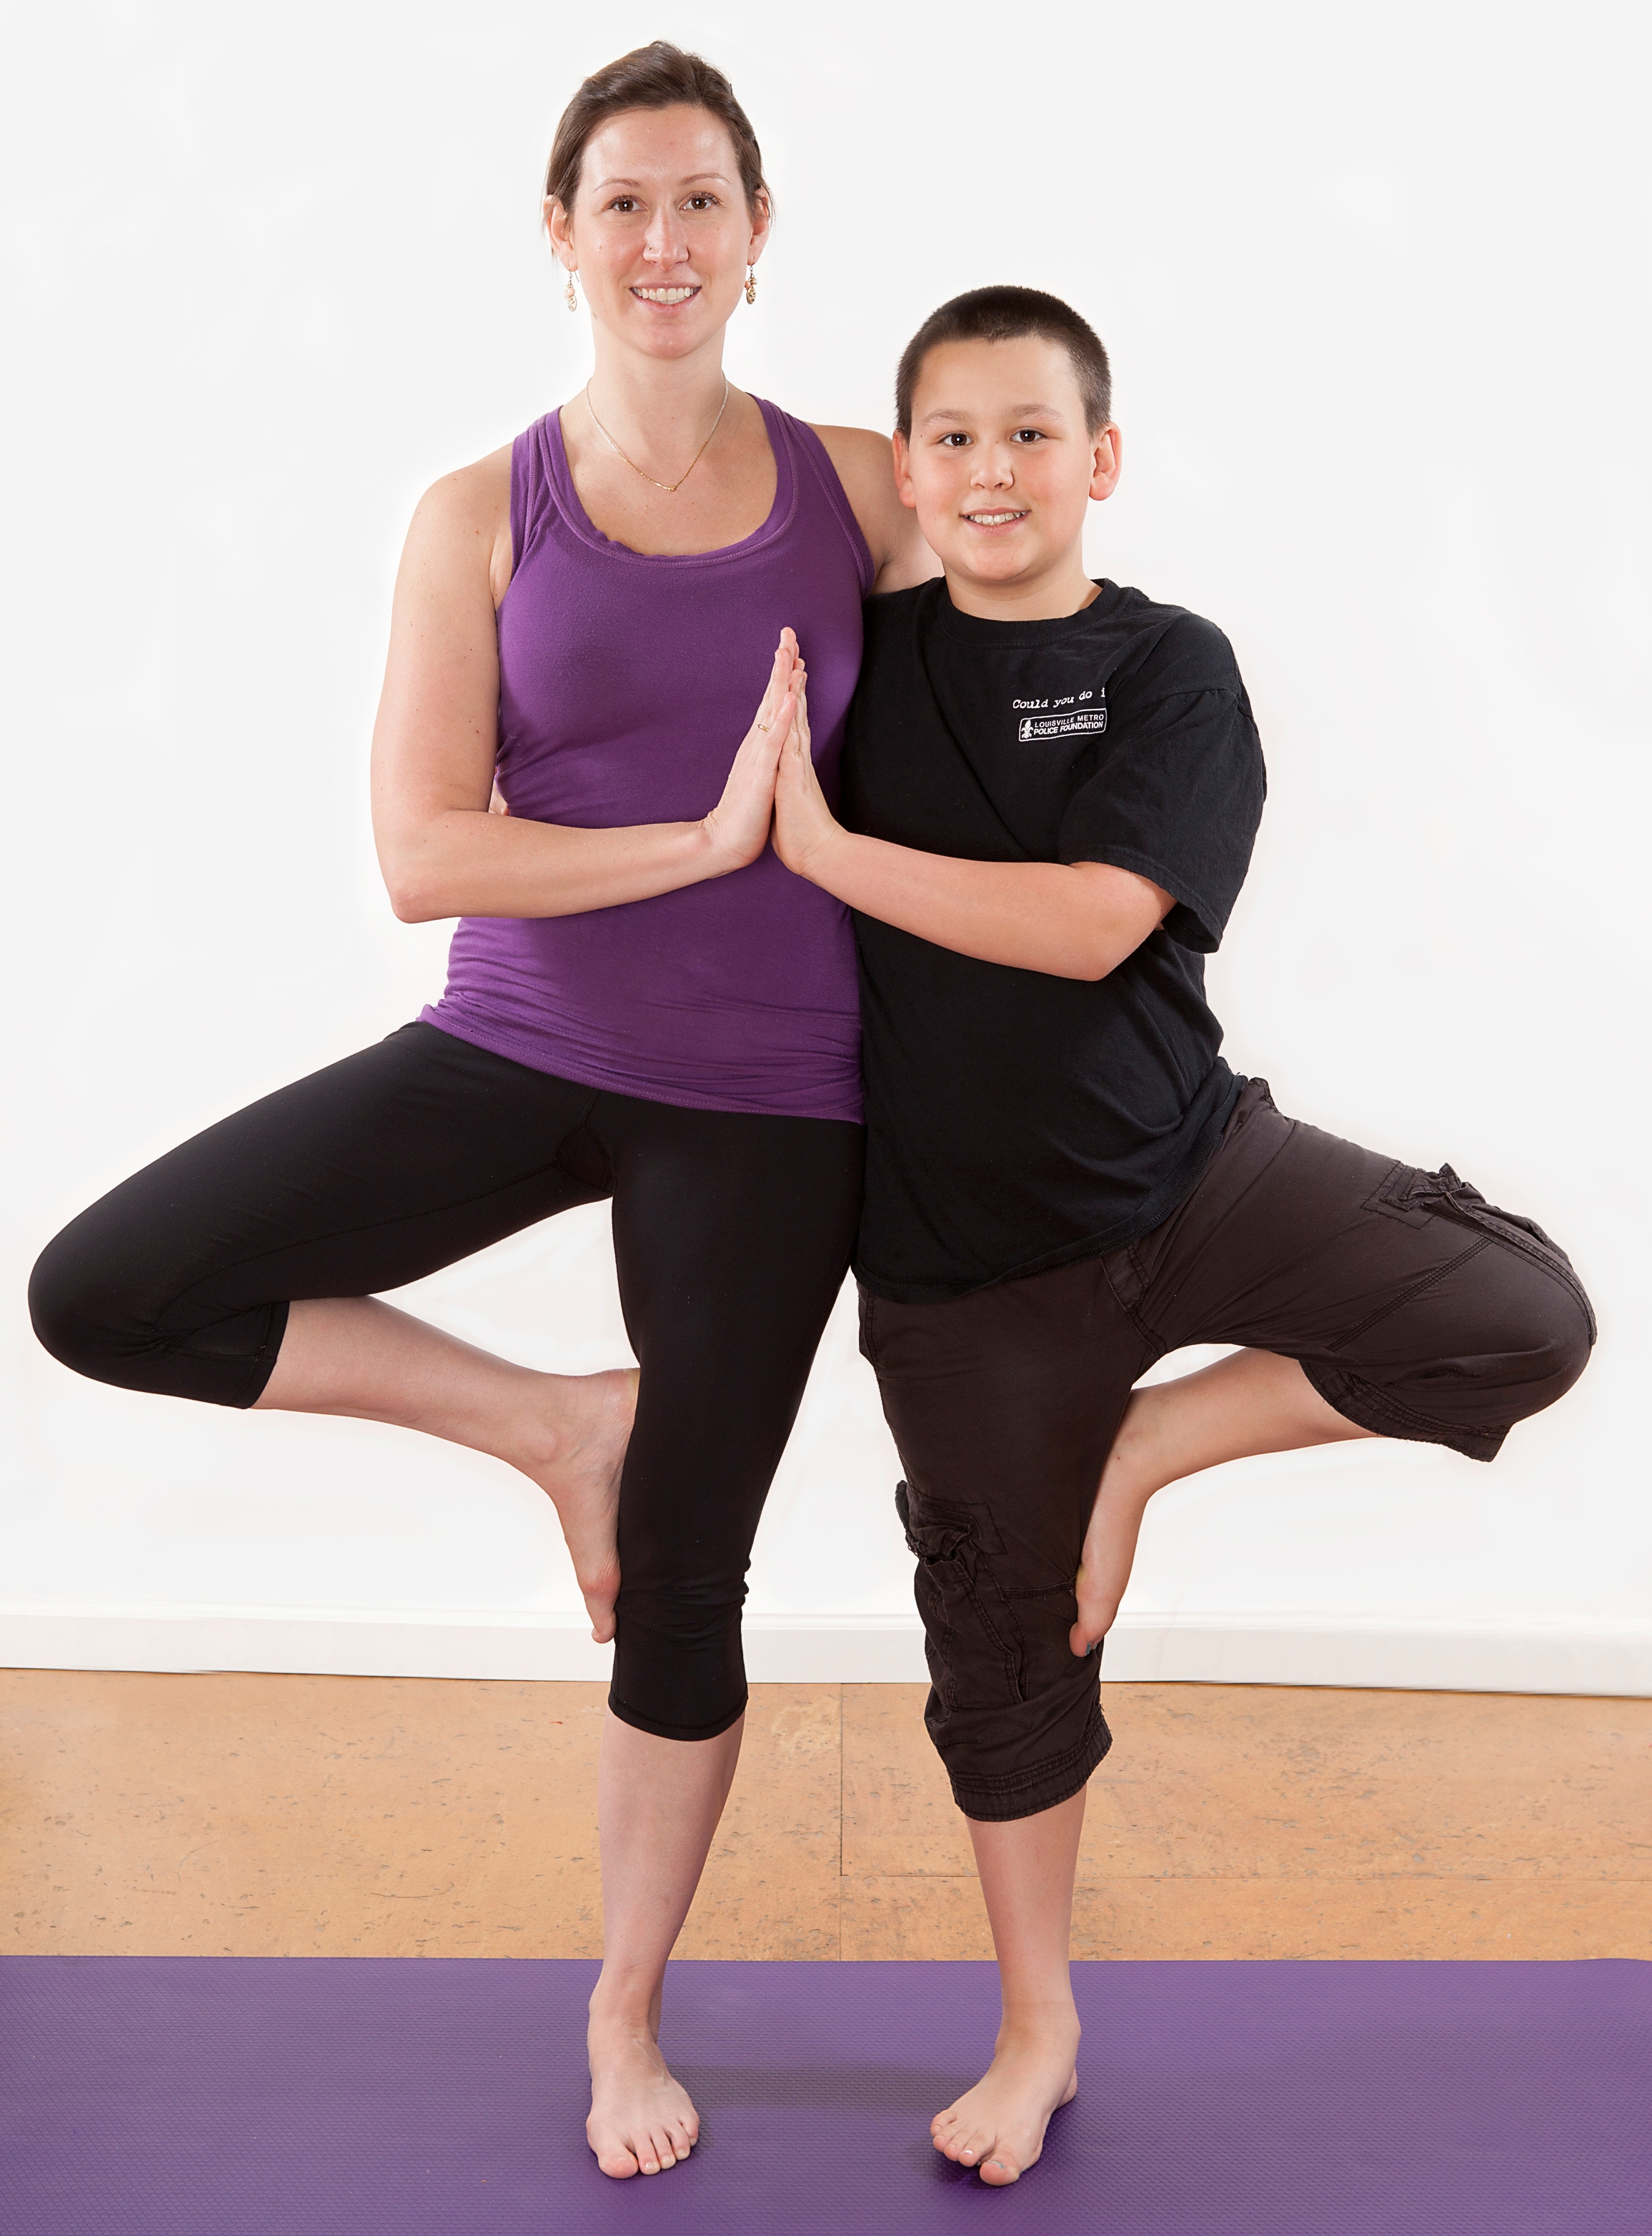 Brandi and her son Julian in Tree Pose